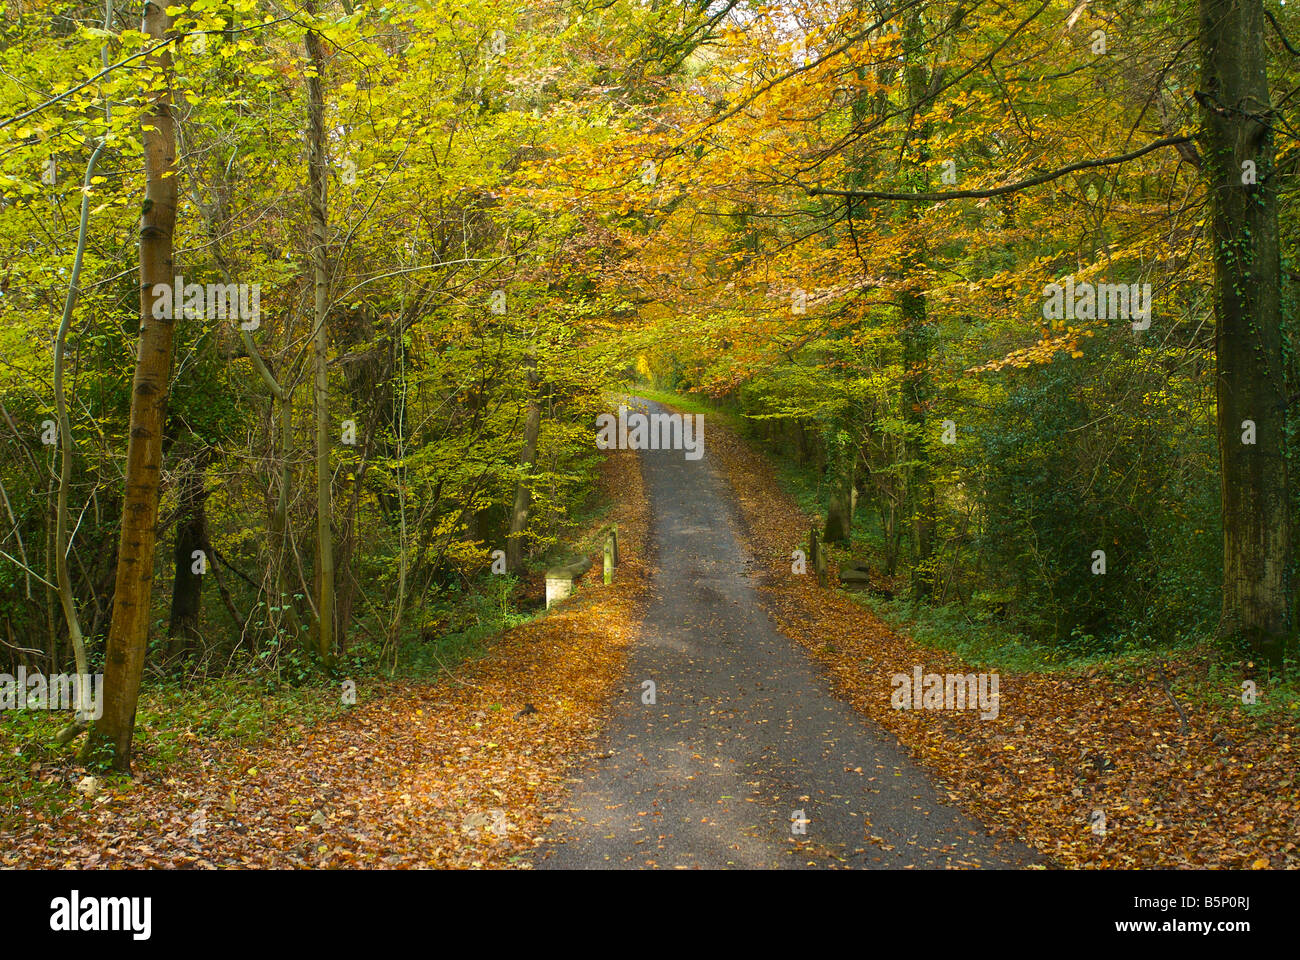 Country lane road à pied england uk automne Photo Stock